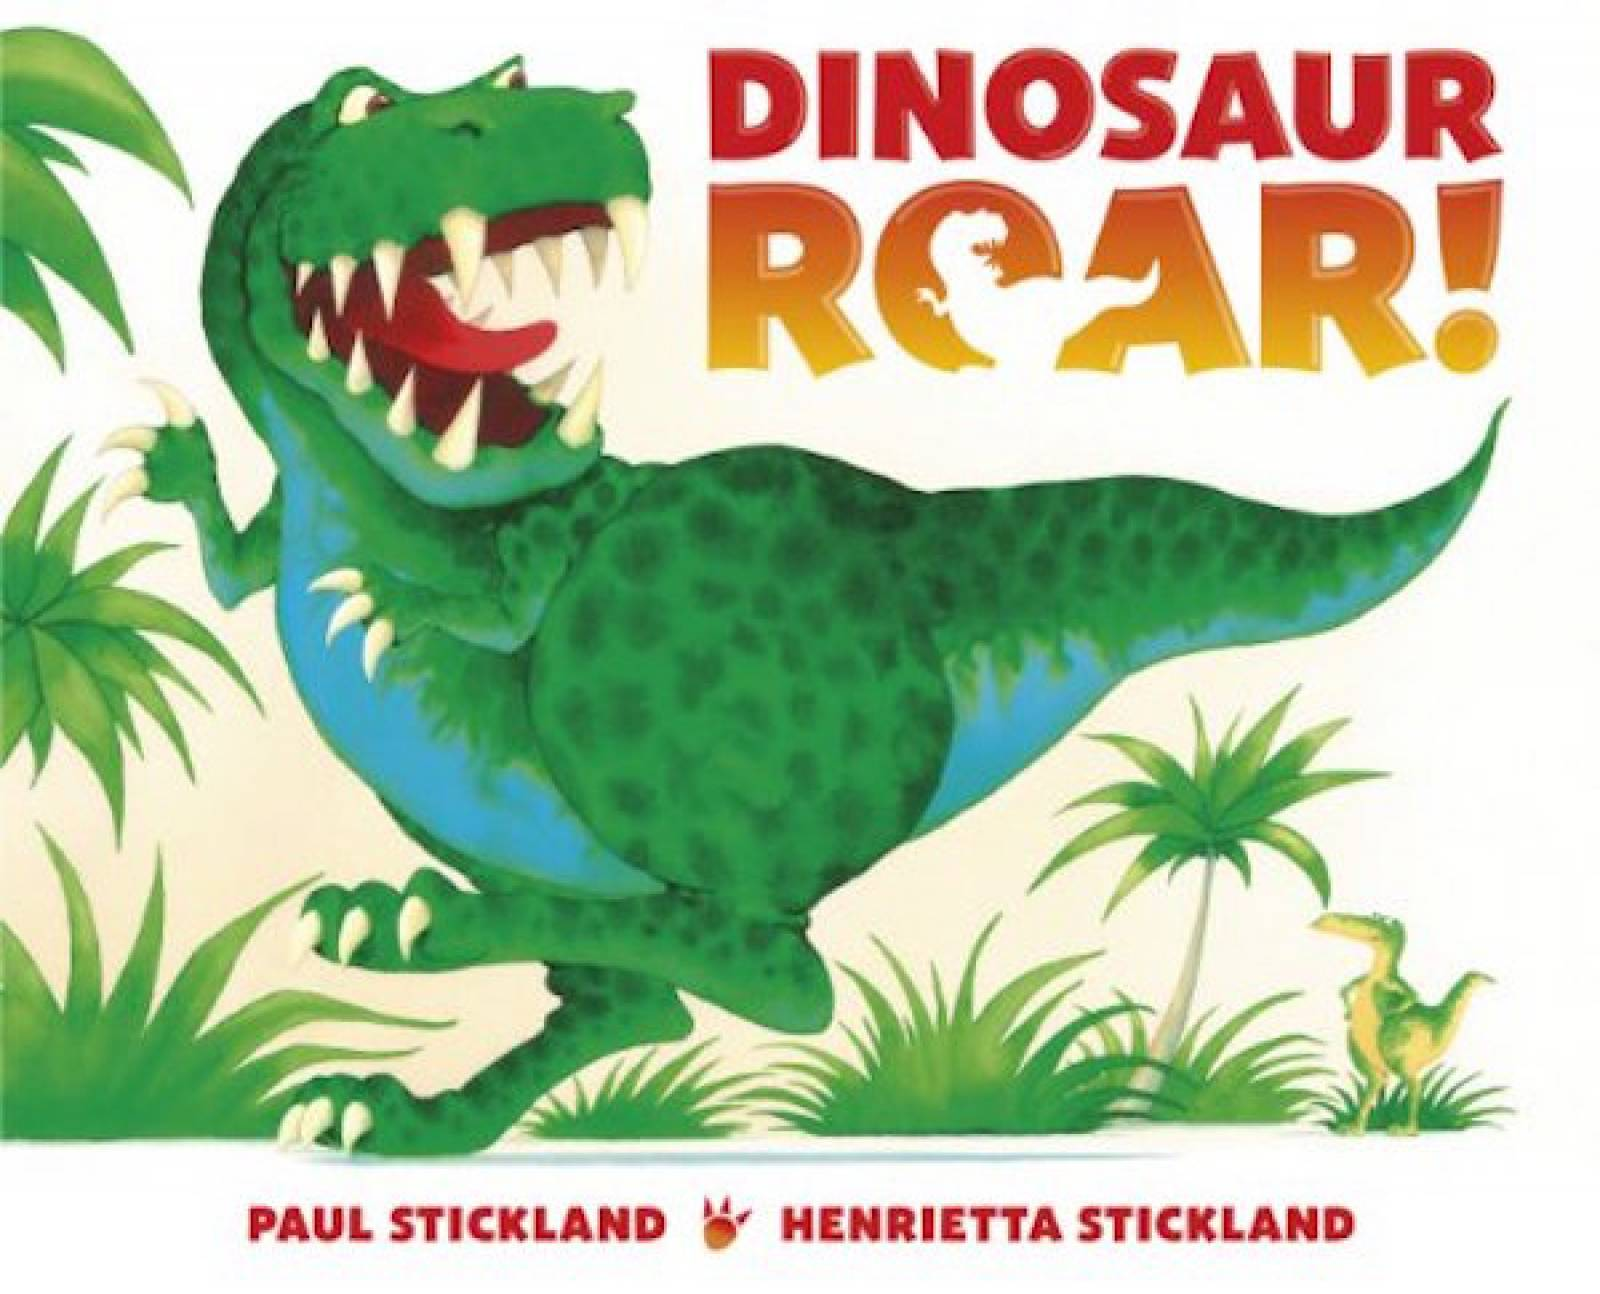 Dinosaur Roar! By Paul Stickland Paperback Book